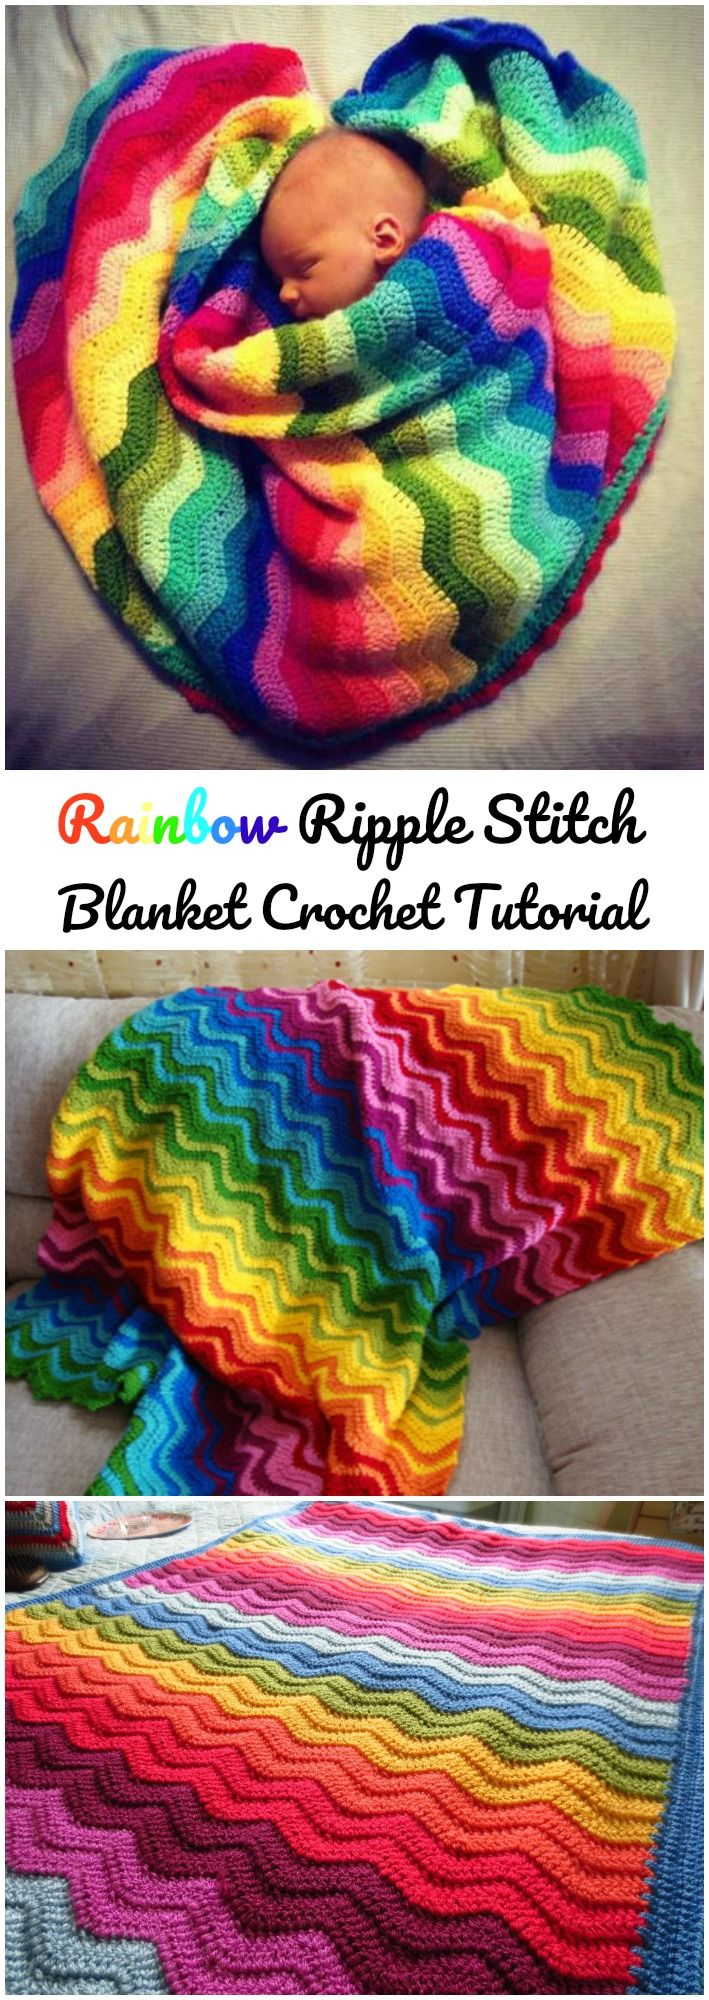 Crochet Rainbow Ripple Stitch Blanket | Crochet | Blankets ...